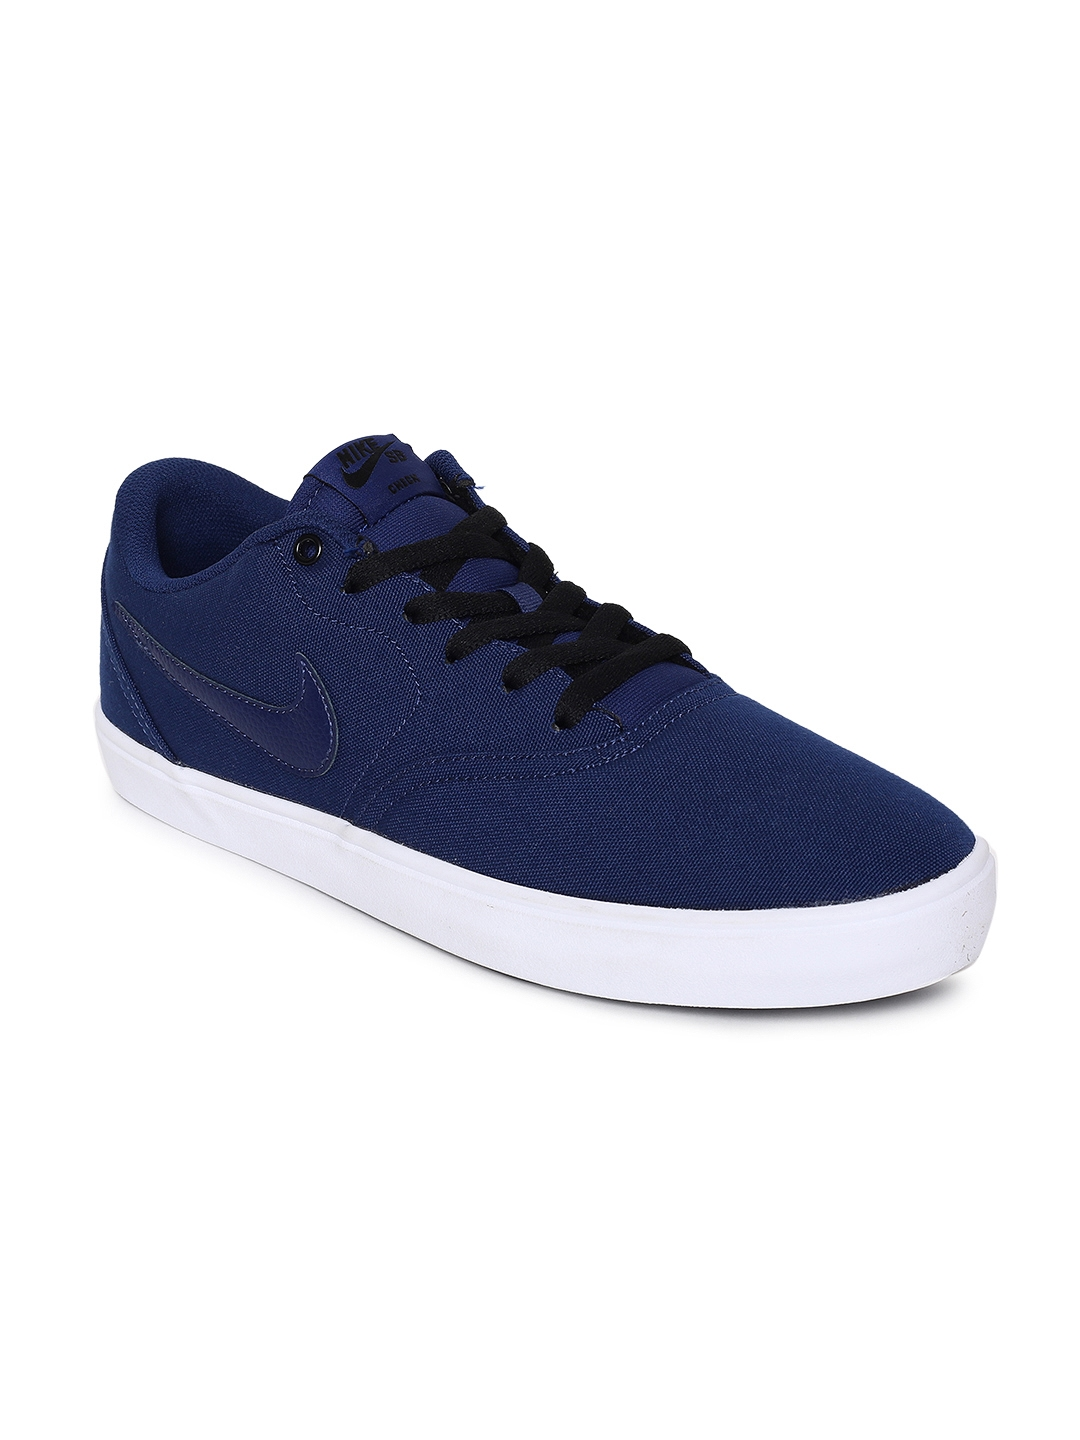 sale retailer e4824 41722 Nike Men SB Check Solarsoft Canvas Skateboarding Shoe